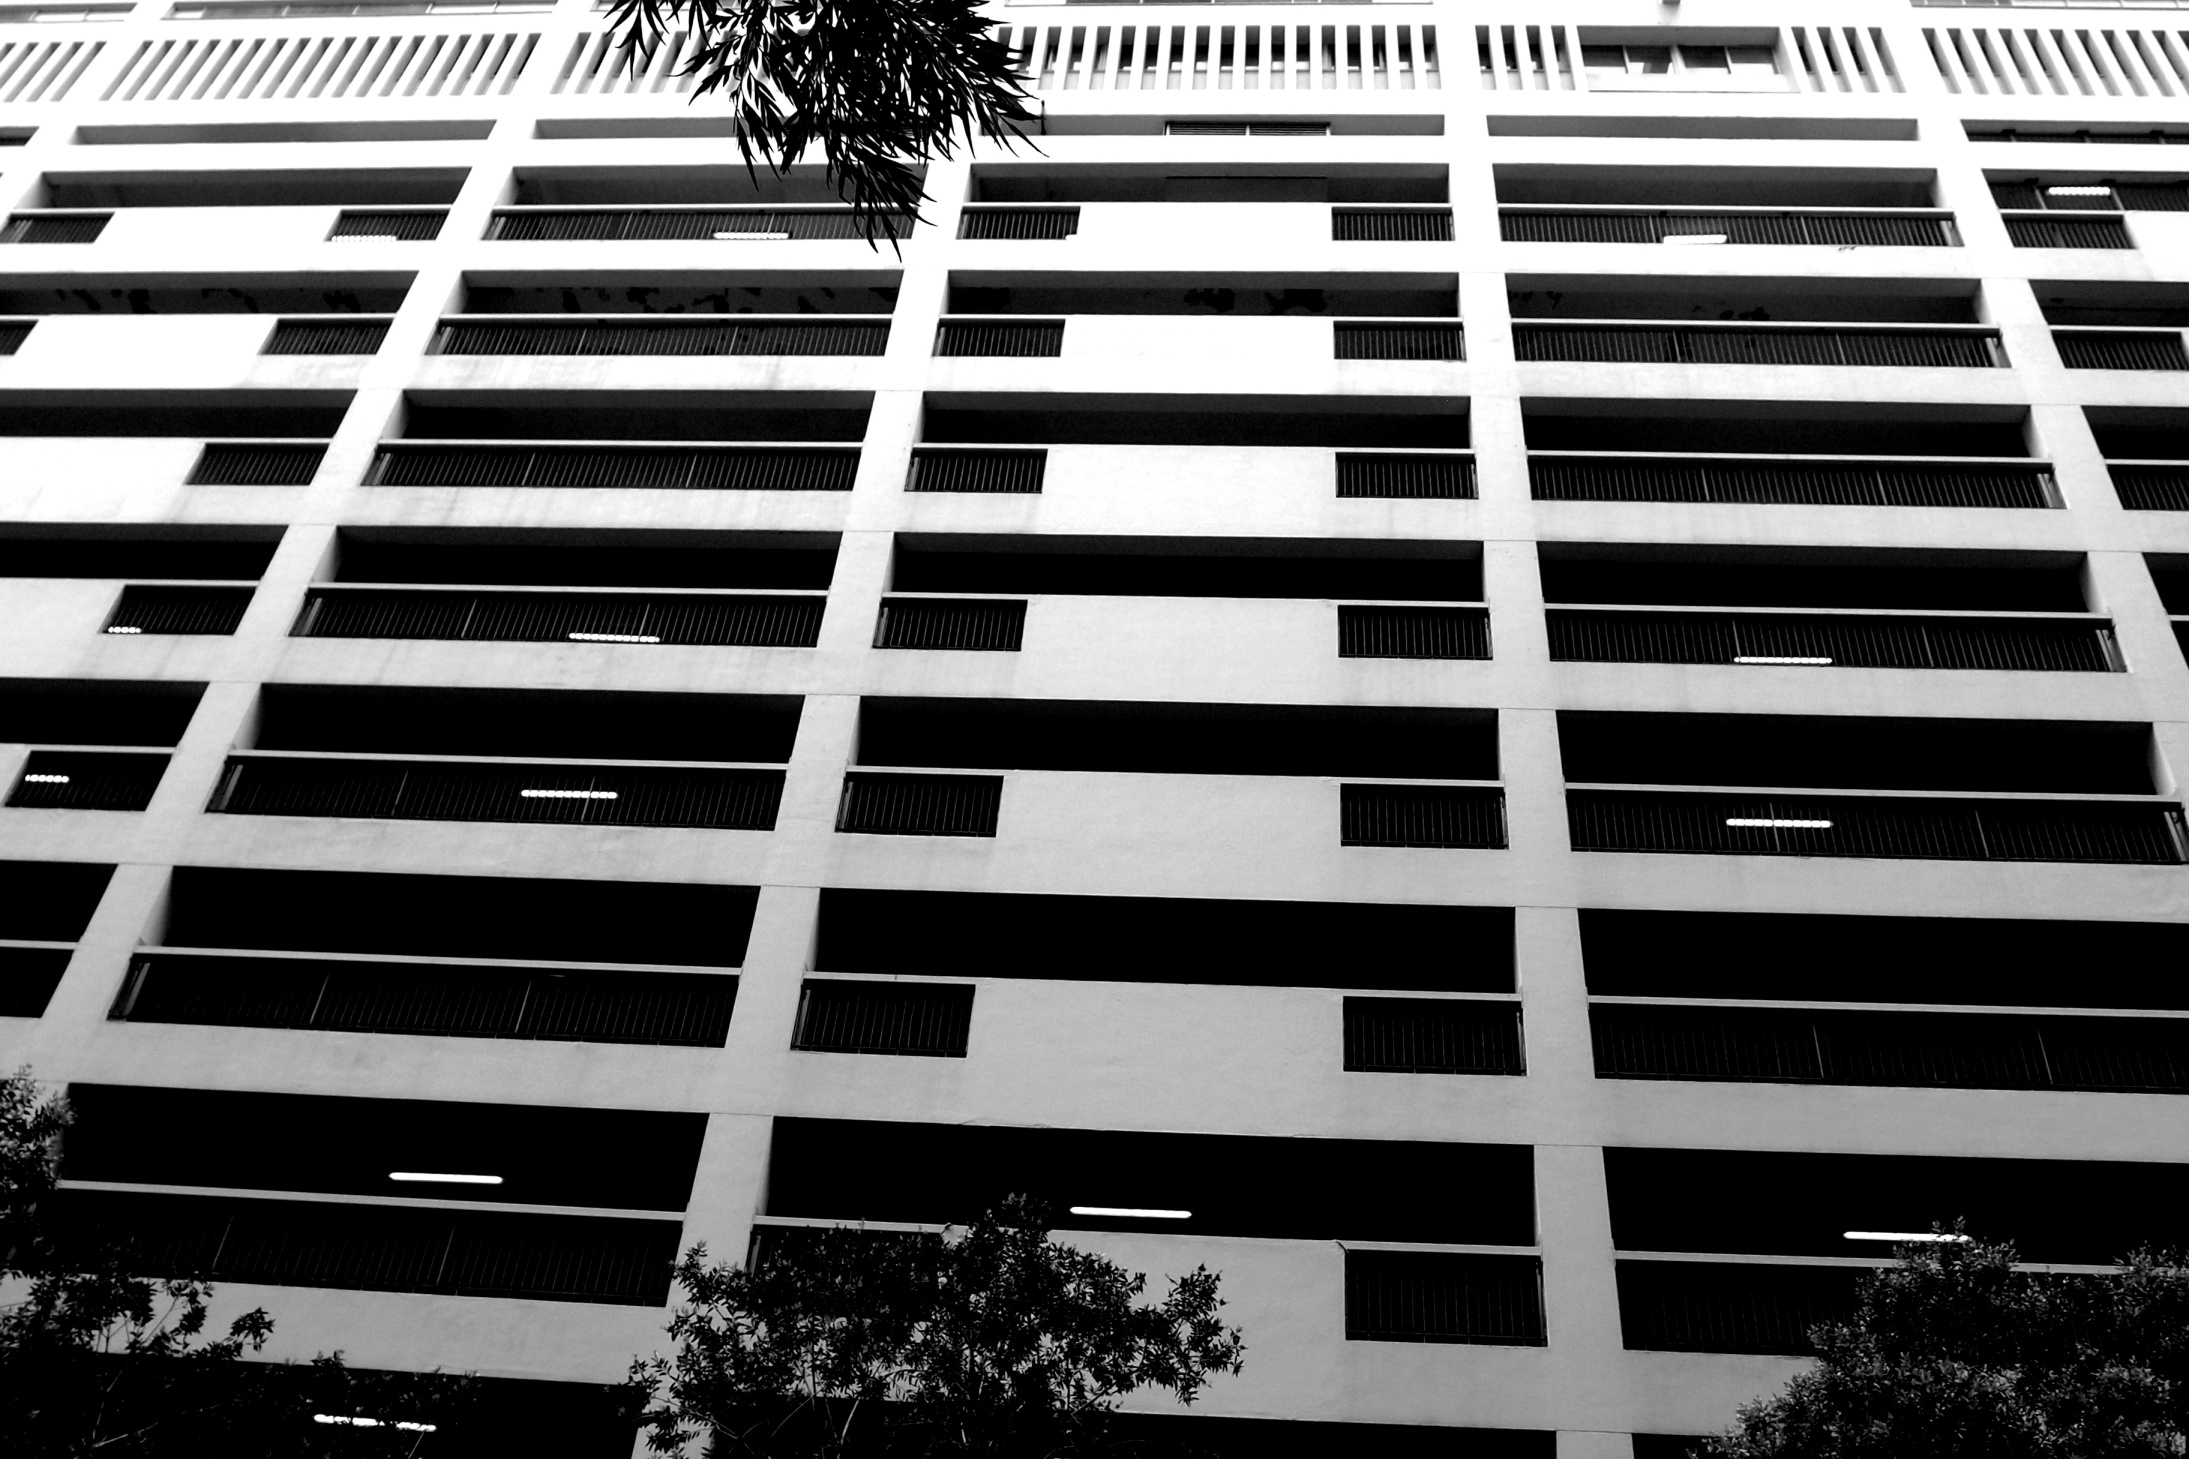 The Middle Road Carpark in TST, Kowloon - I used to go bowling here in the late 1980's / early 1990's. the Bowling Alley is long gone